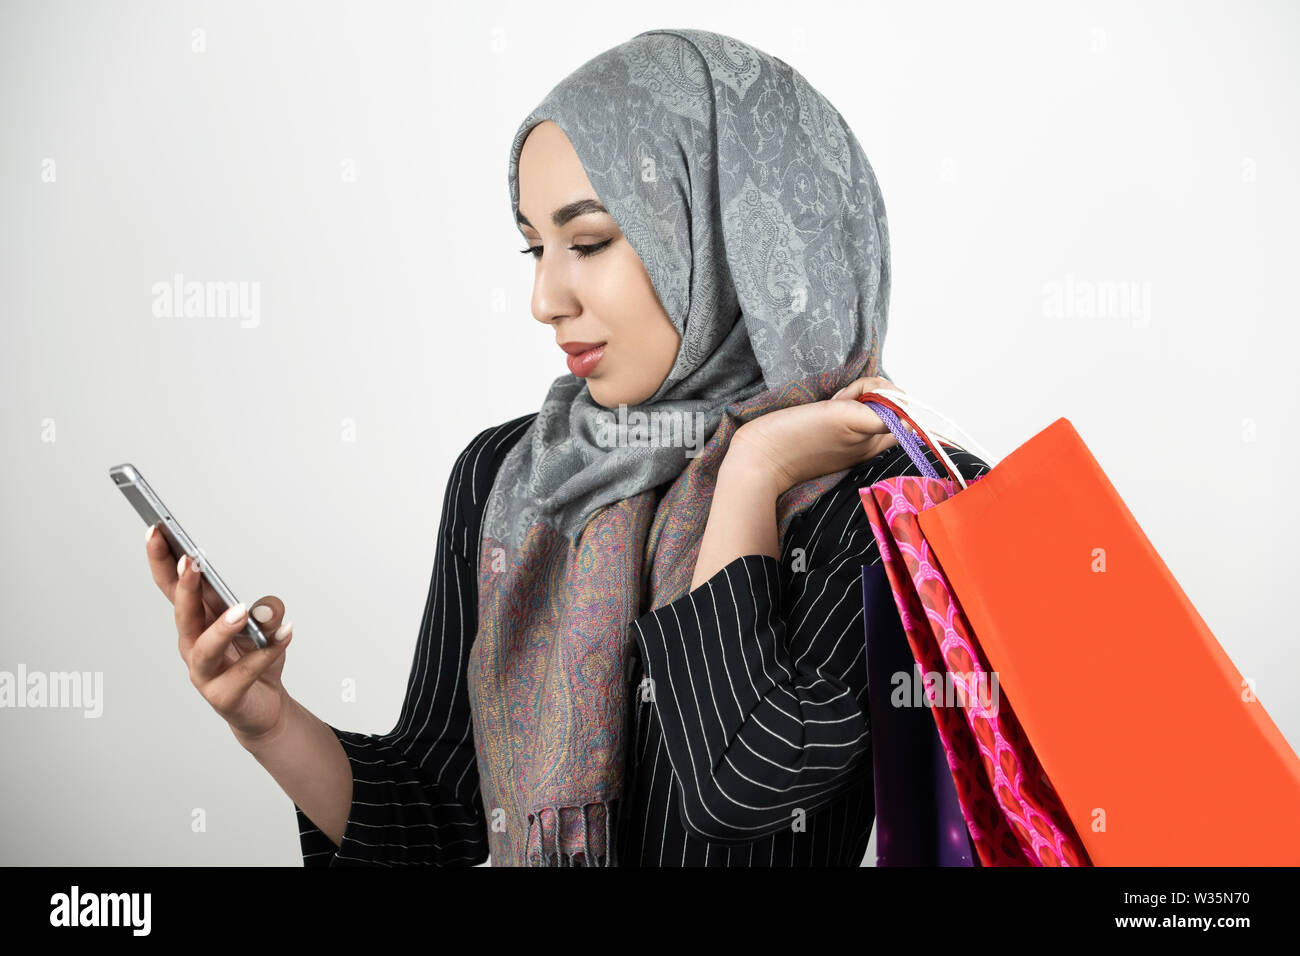 young beautiful Muslim business woman wearing turban hijab headscarf tapping smartphone with one hand and carrying shopping bags in another hand - Stock Image